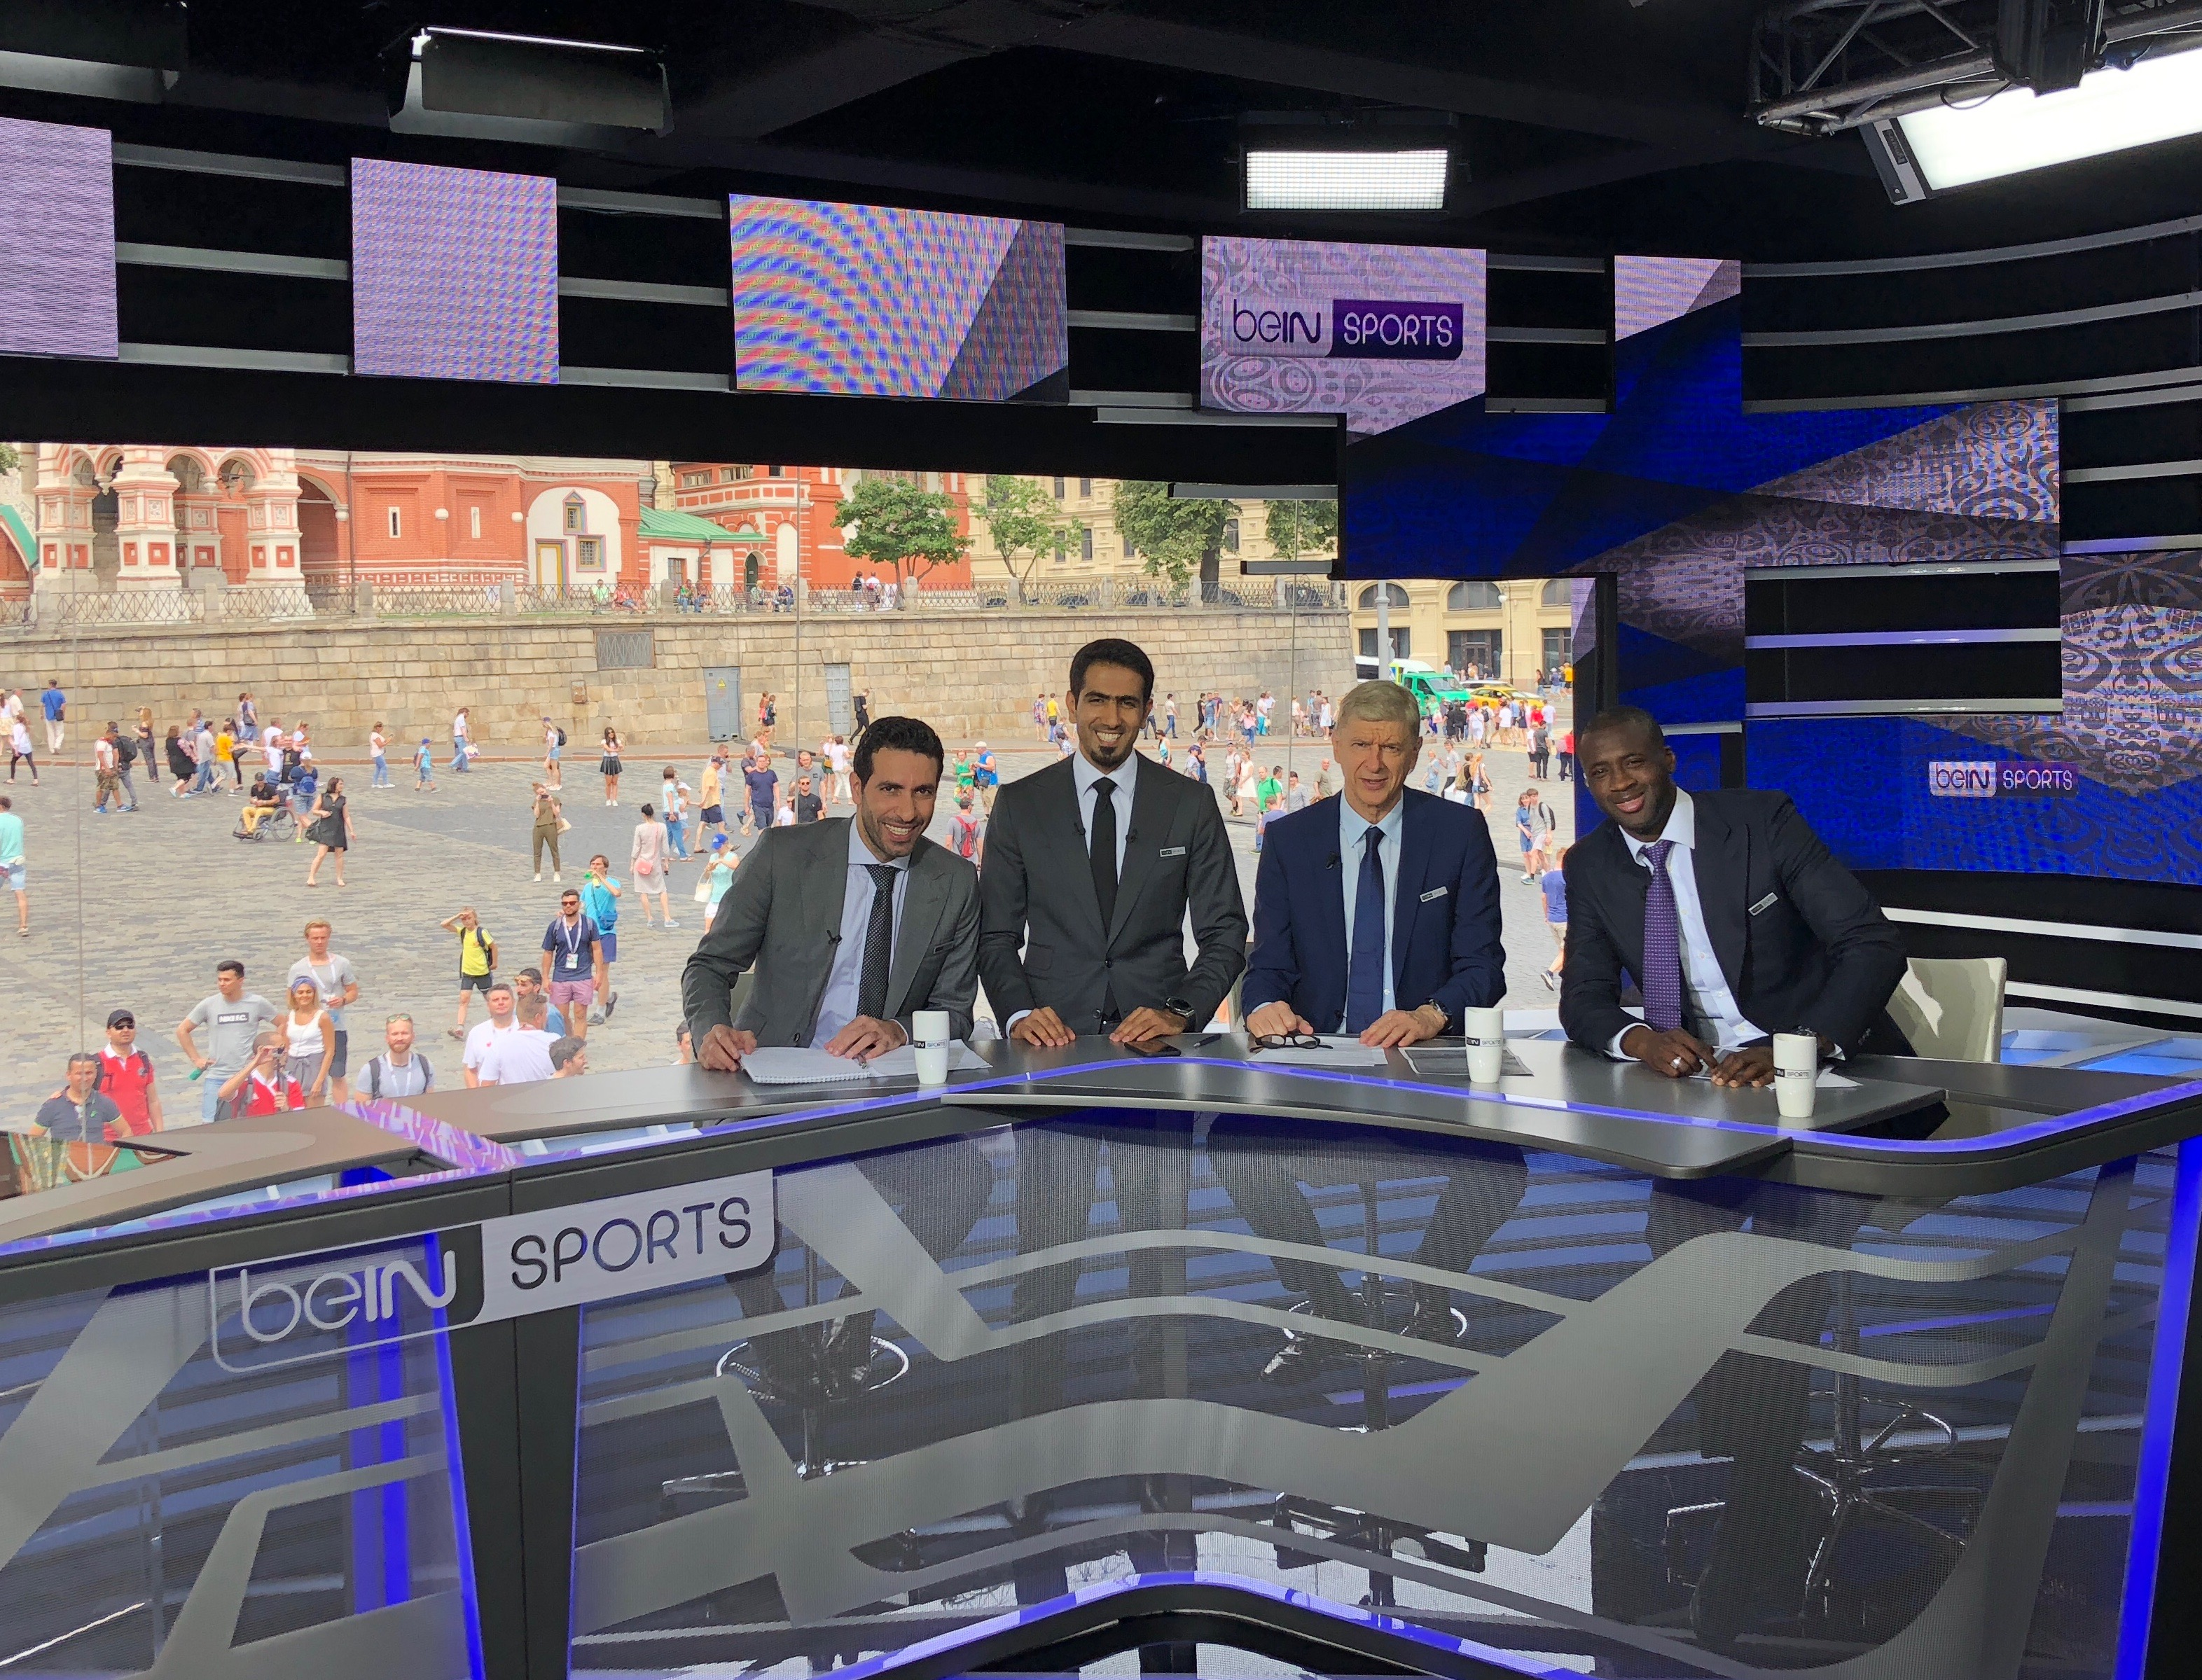 Yaya Toure Yaya Toure Enjoys Time With Bein Sports At World Cup